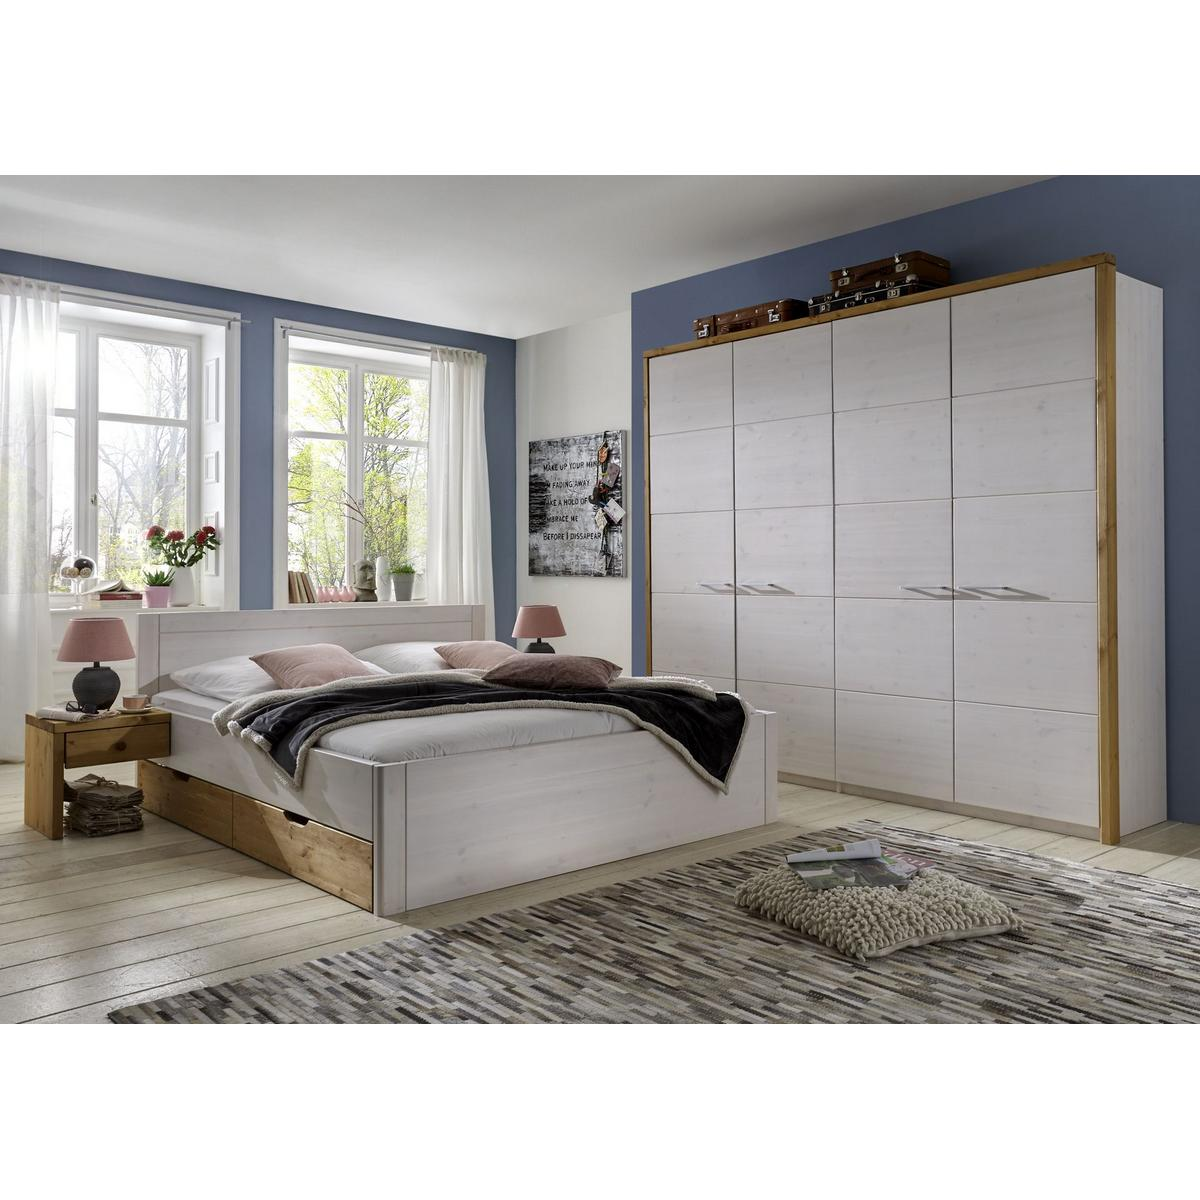 bett mit schubladen 100x200 rauna xl holz kiefer massiv 2 farbig wei gelaugt. Black Bedroom Furniture Sets. Home Design Ideas